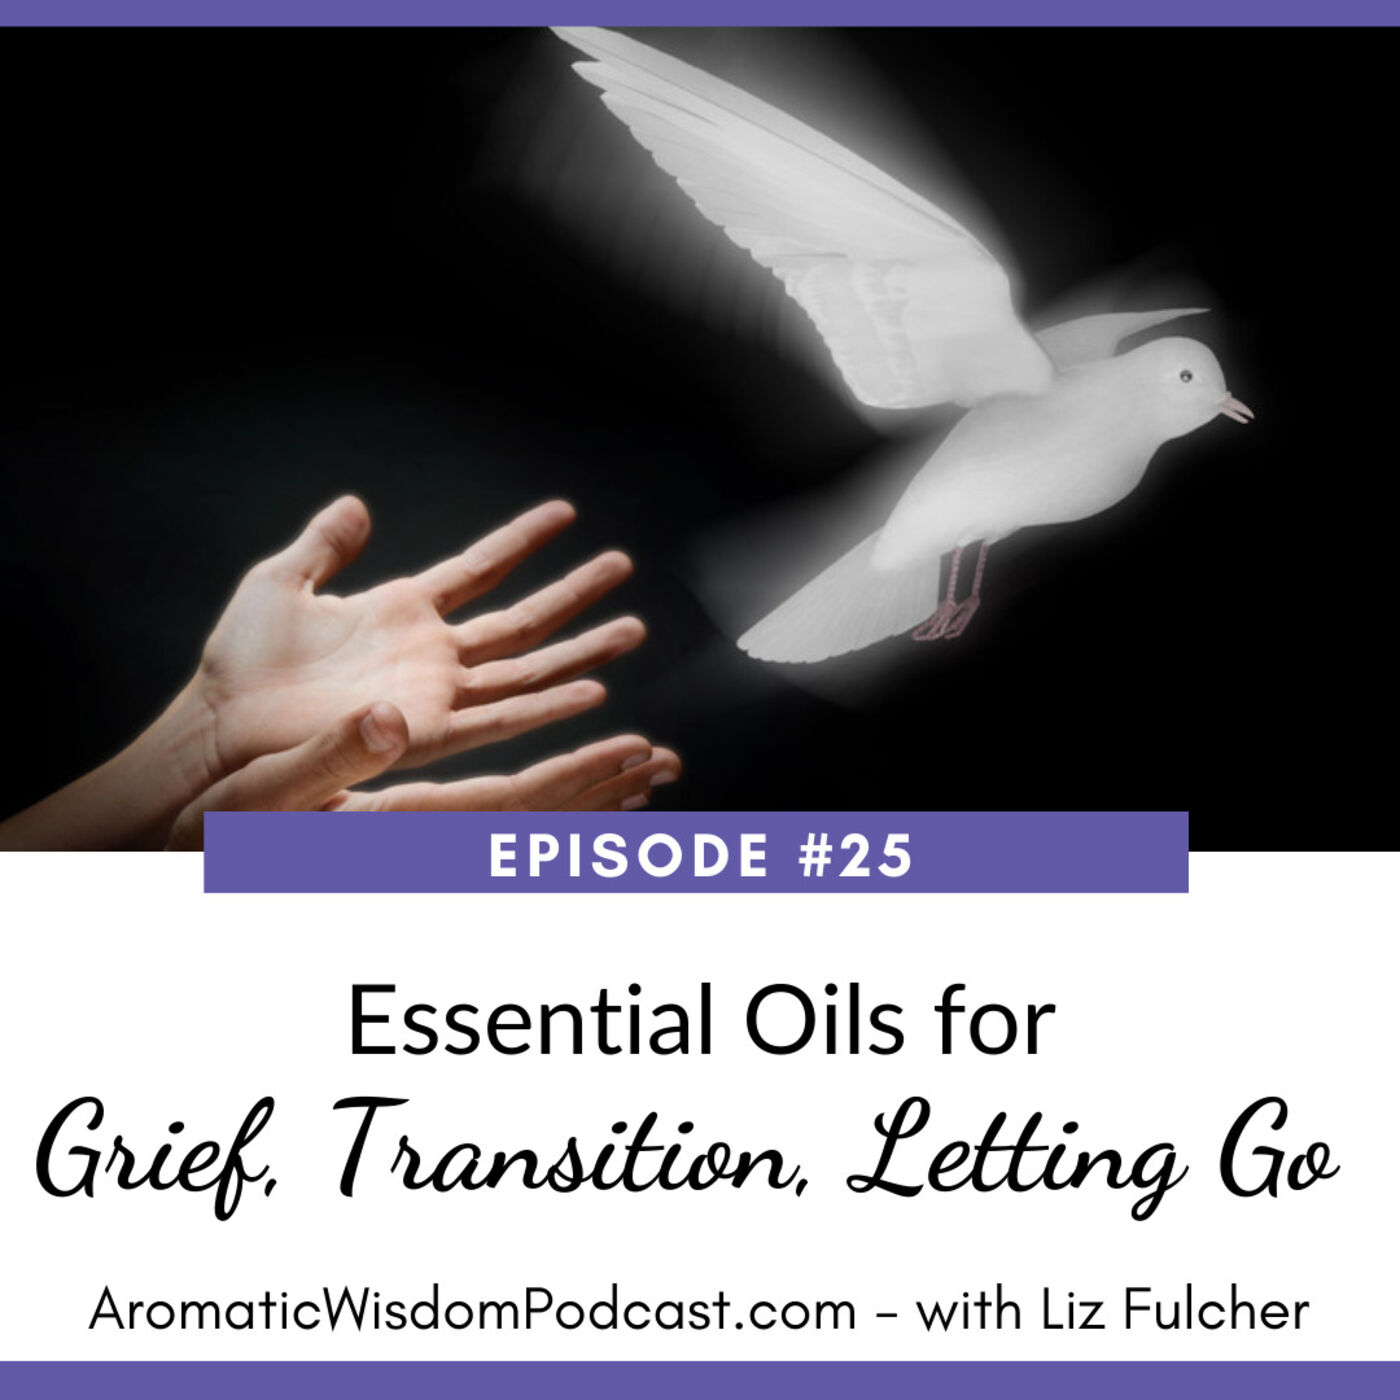 AWP 025:  Essential Oils for Grief, Transition and Letting Go